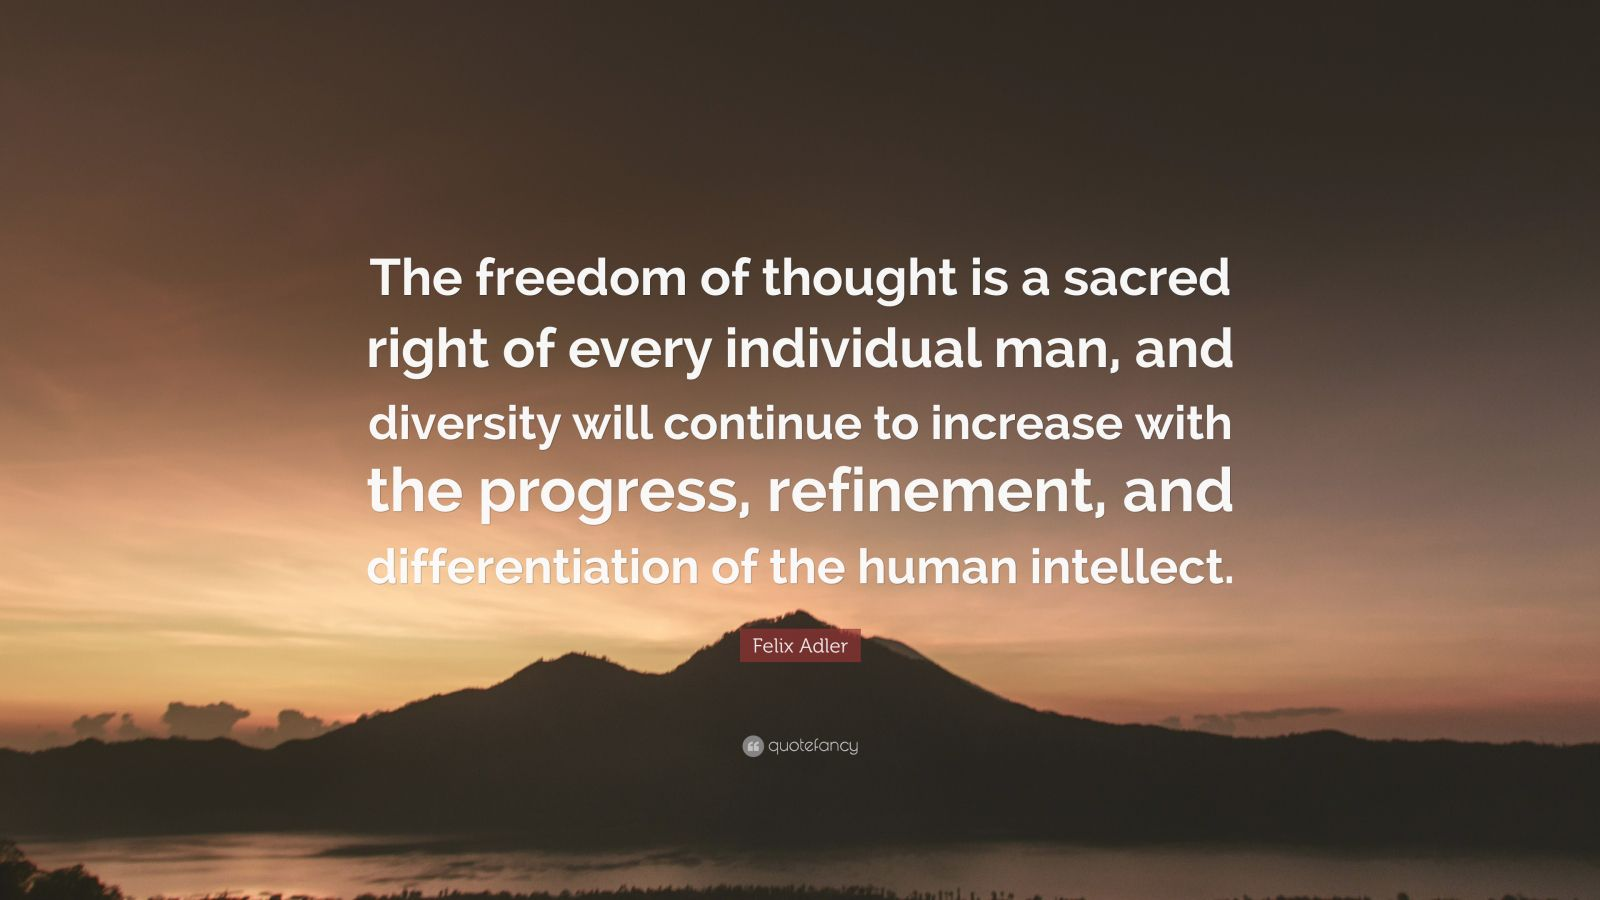 """Felix Adler Quote: """"The freedom of thought is a sacred right of every individual man, and diversity will continue to increase with the progress, refinement, and differentiation of the human intellect."""""""